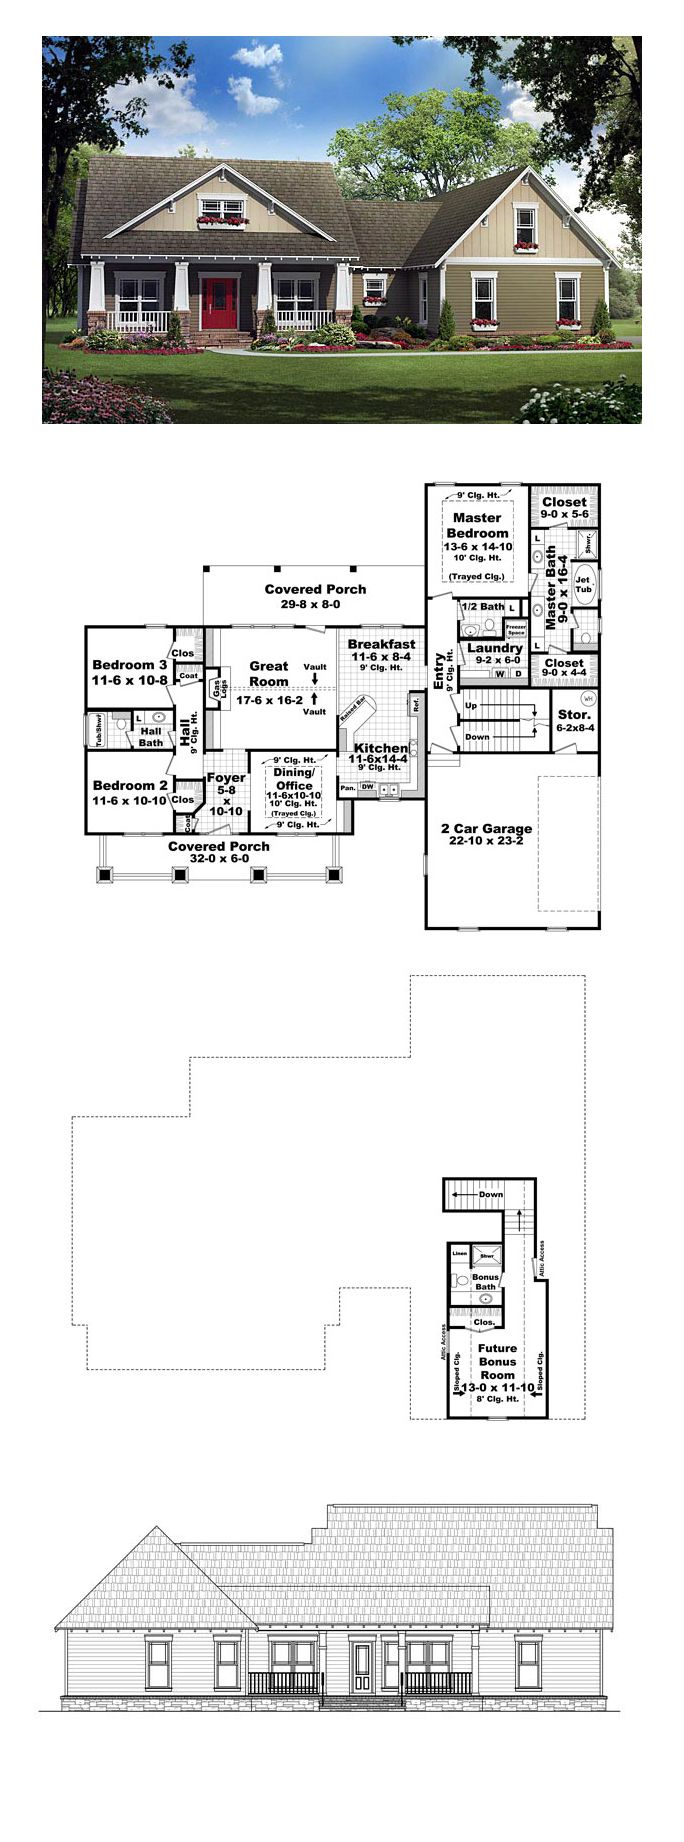 Cottage country craftsman southern house plan 59194 for Southern craftsman home plans